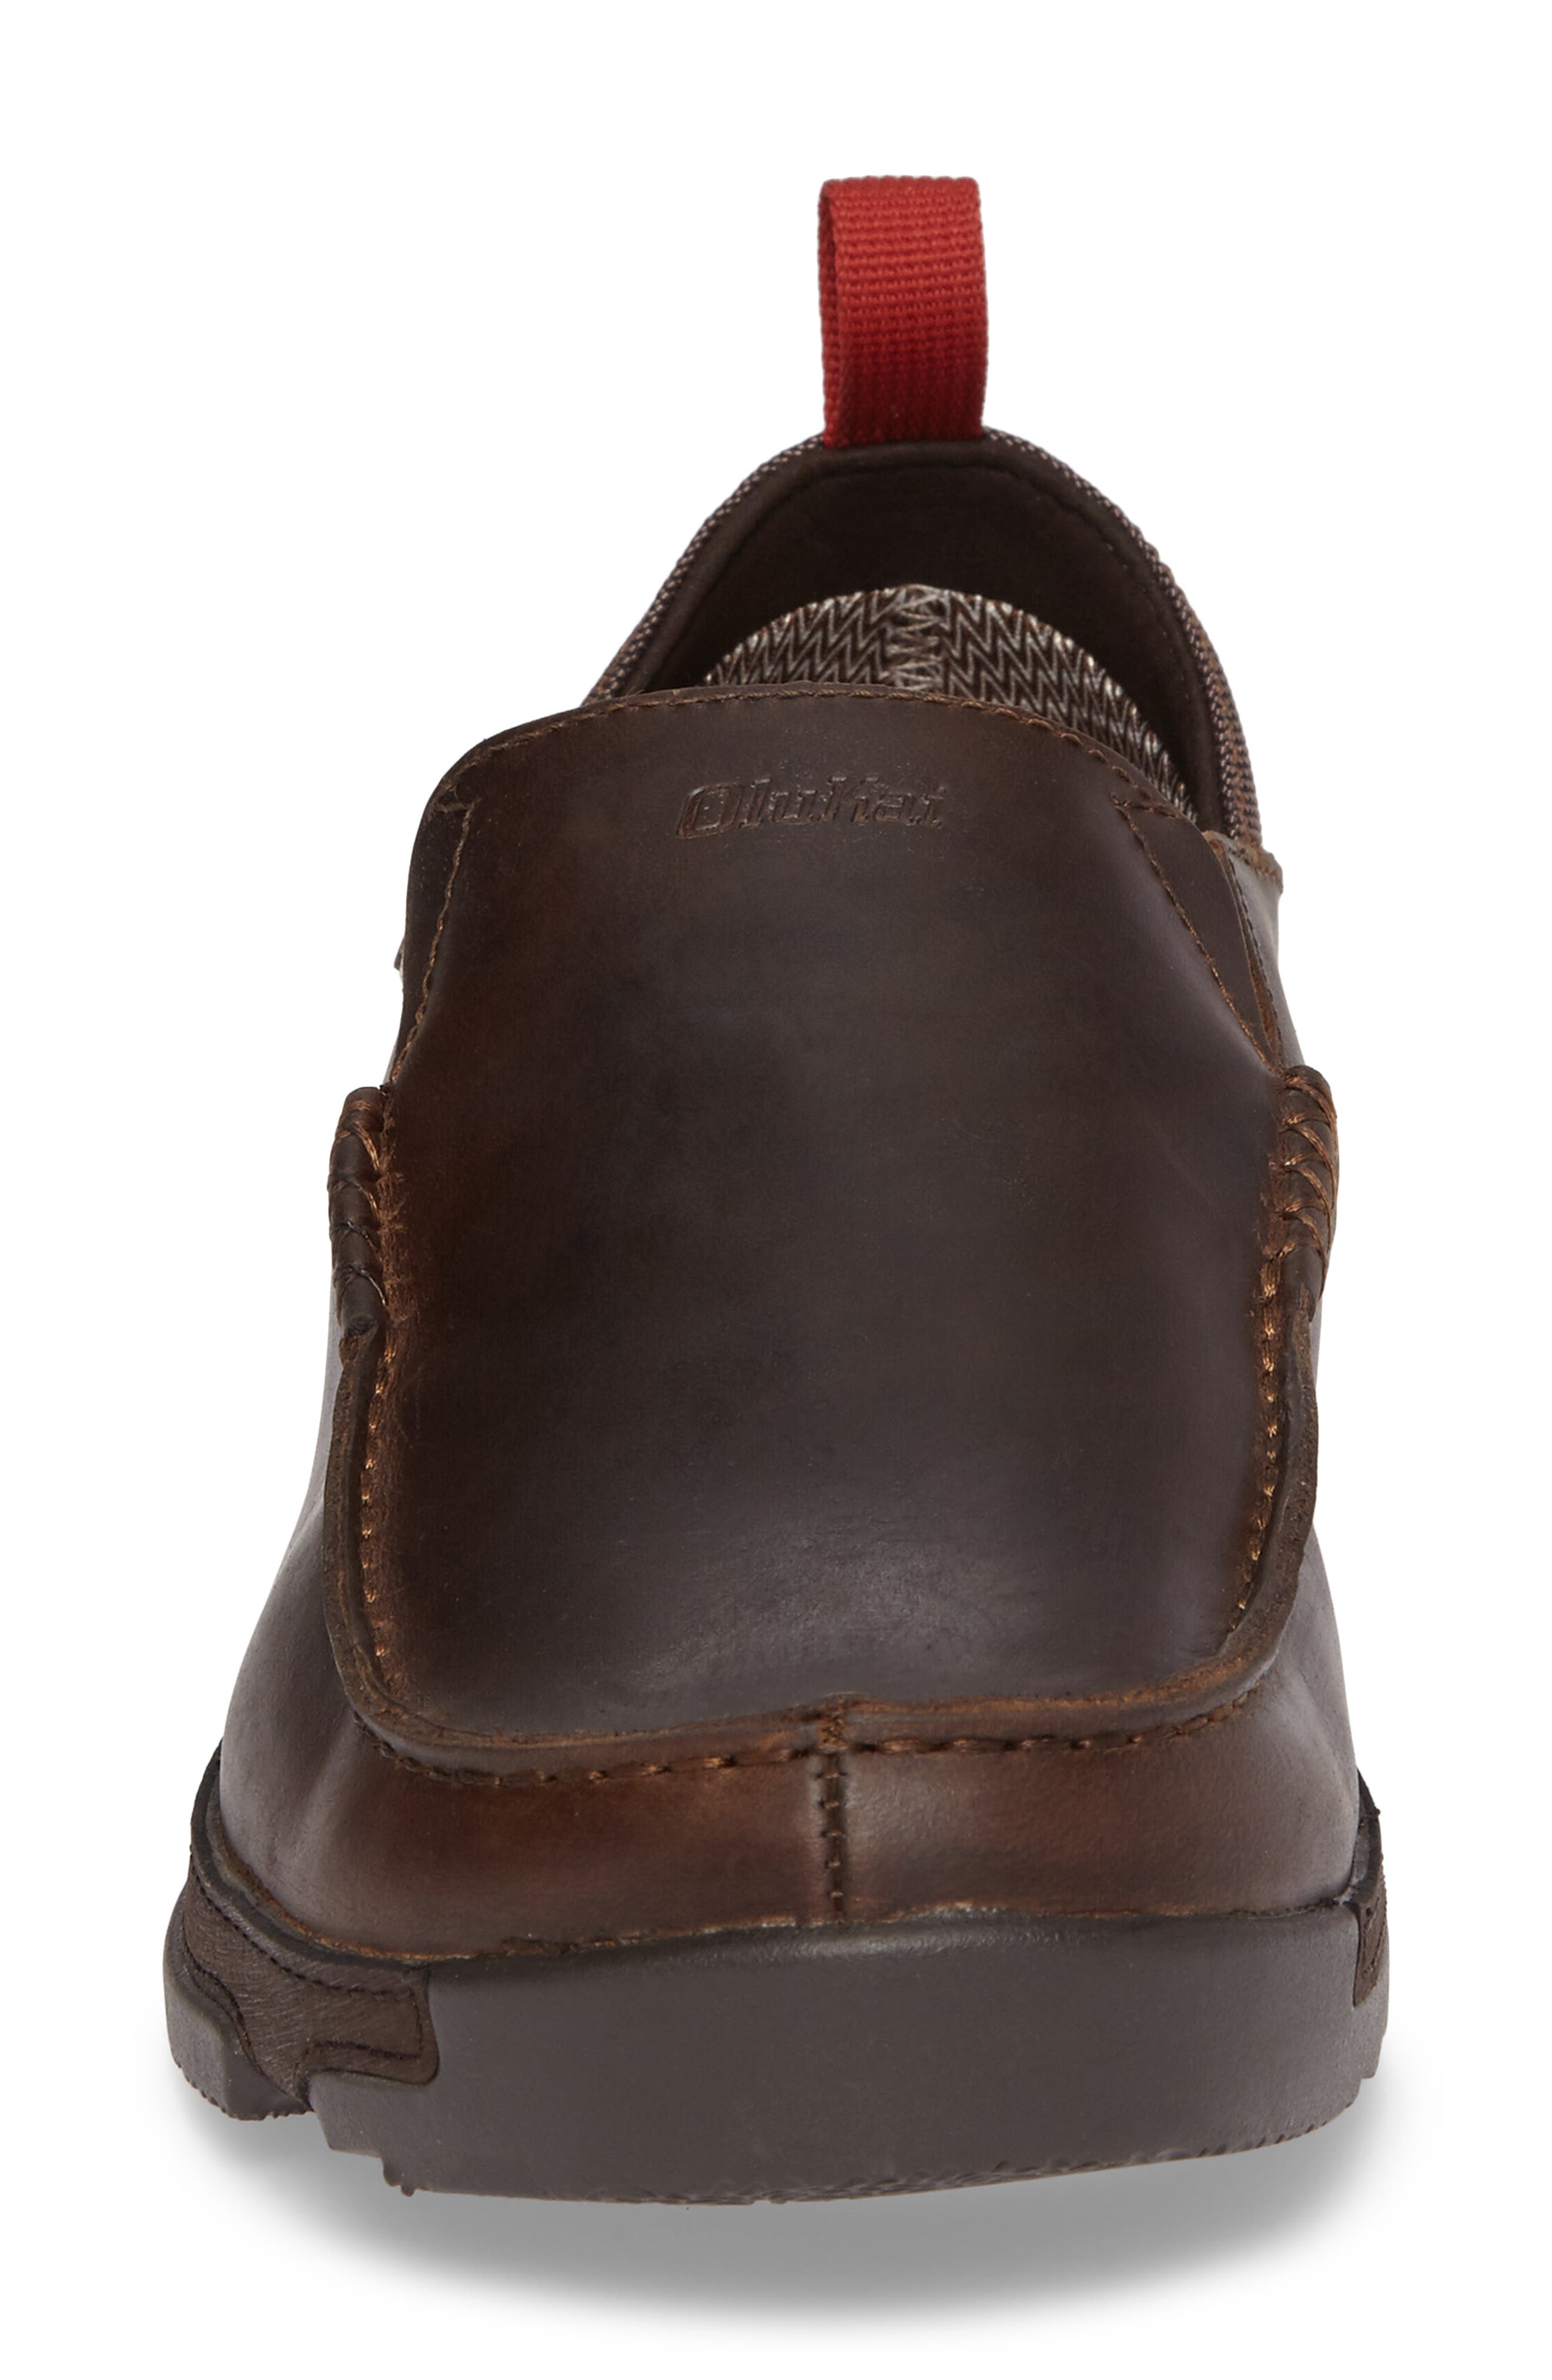 Na'I Collapsible Waterproof Slip-On,                             Alternate thumbnail 4, color,                             CAROB/ DARK WOOD LEATHER